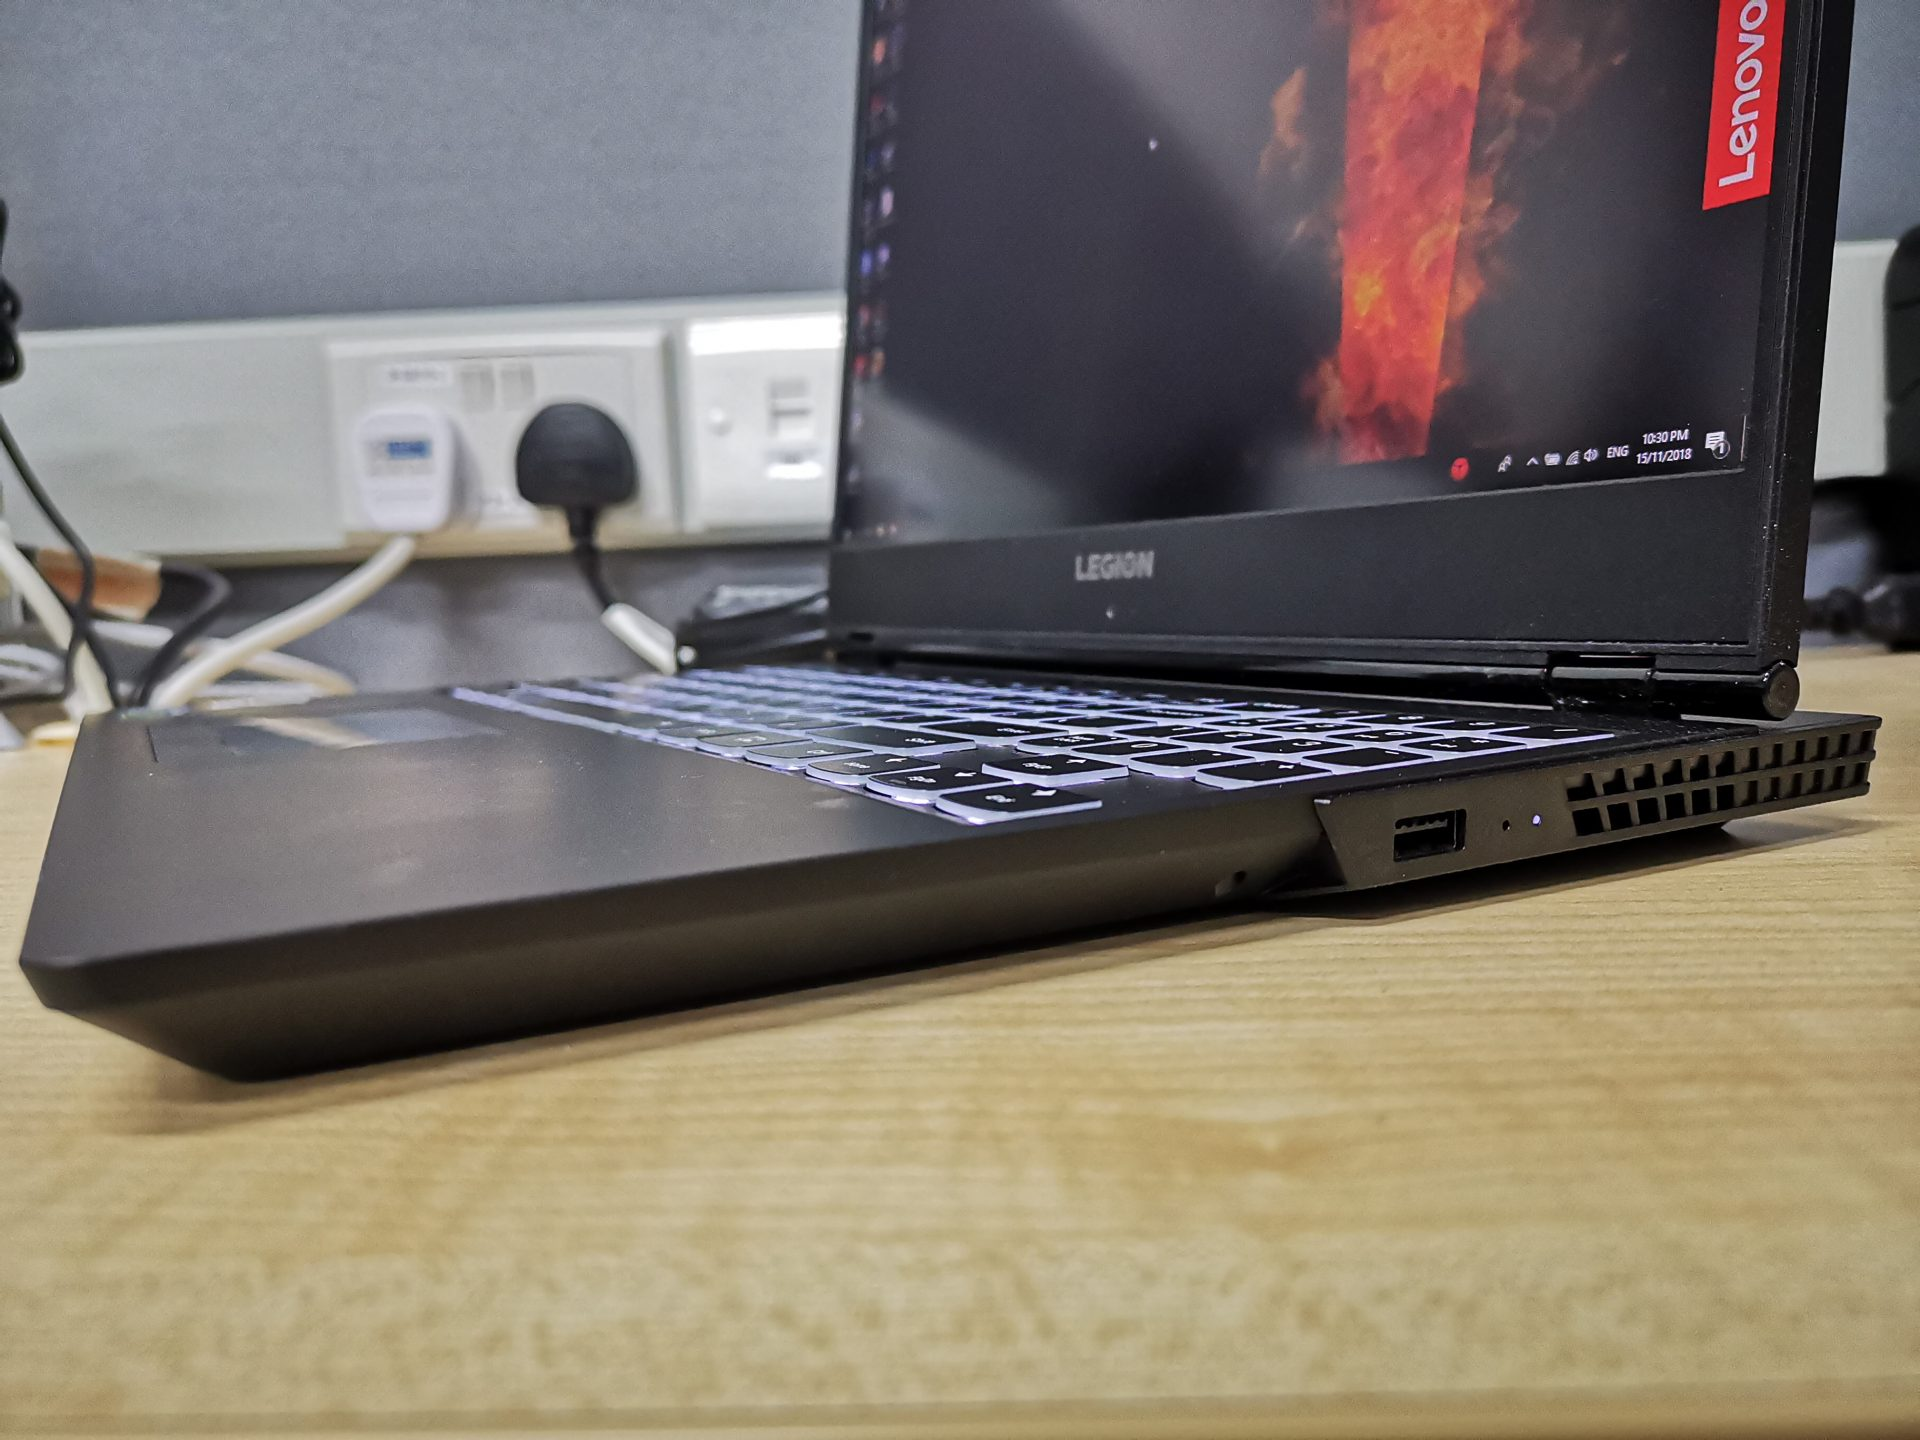 Lenovo Legion Y530 Gaming Laptop Review - The Tech Revolutionist